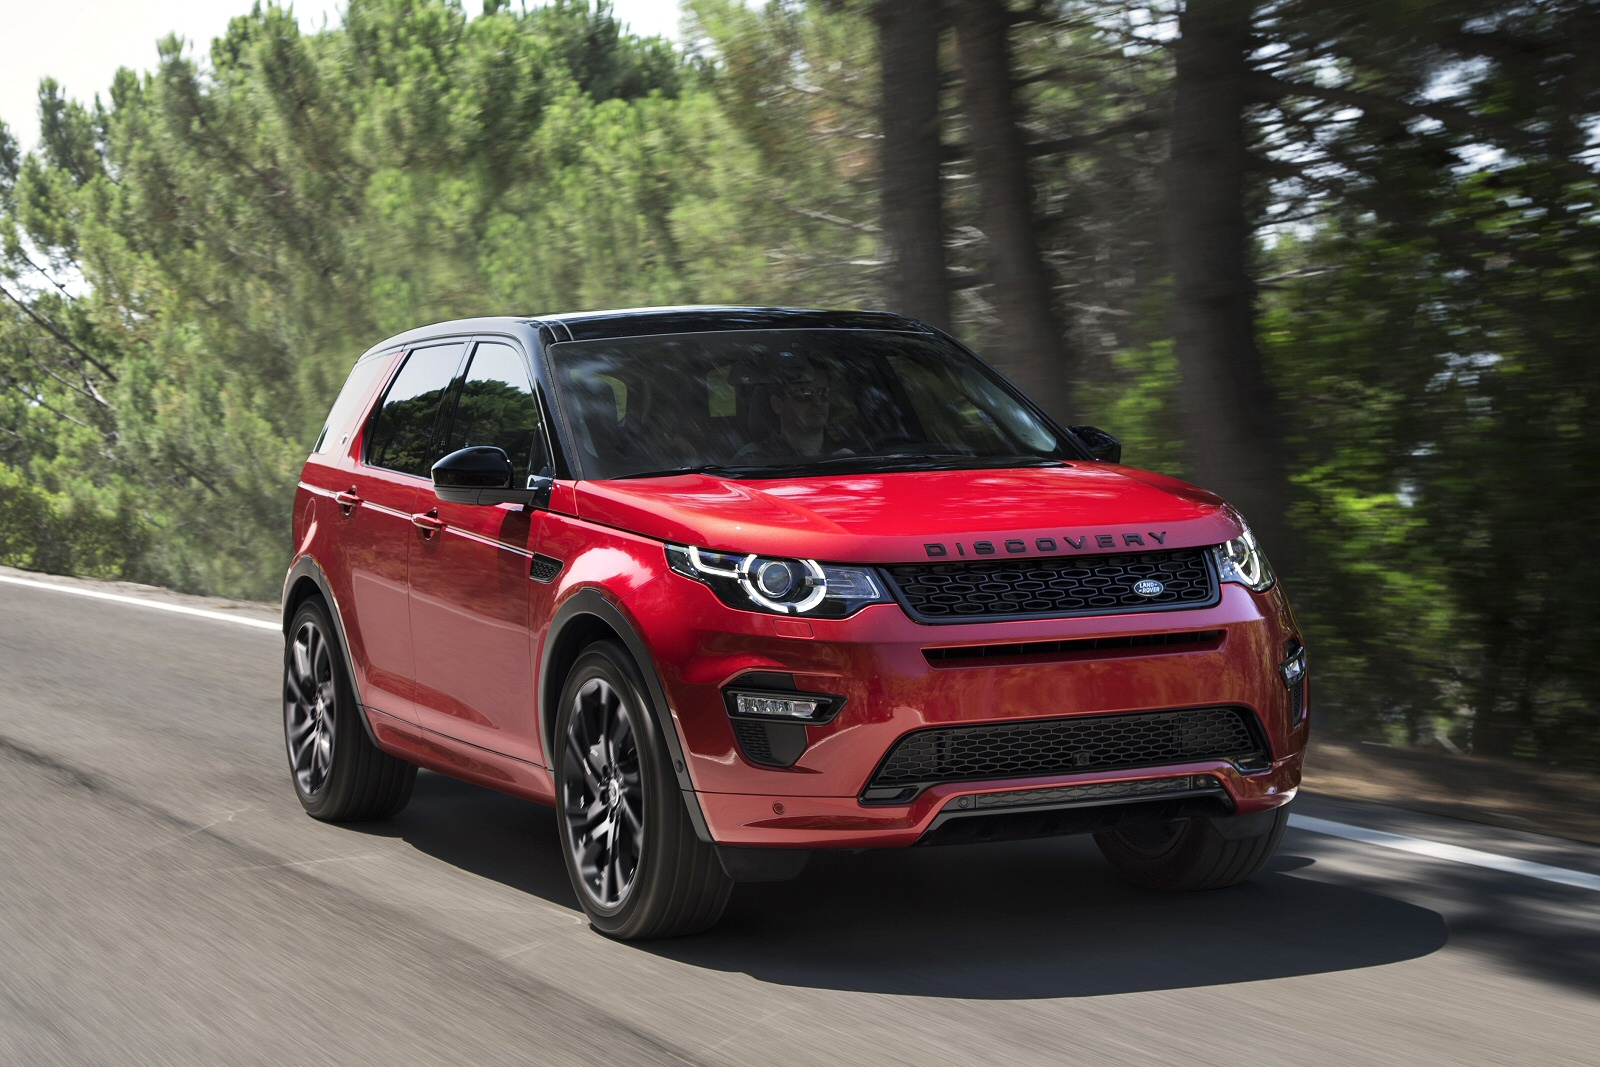 New Land Rover Discovery Sport 20 Td4 180 Hse 5dr Diesel Station On The Main Black Socket Use Pin 5 Electric Brake Wagon